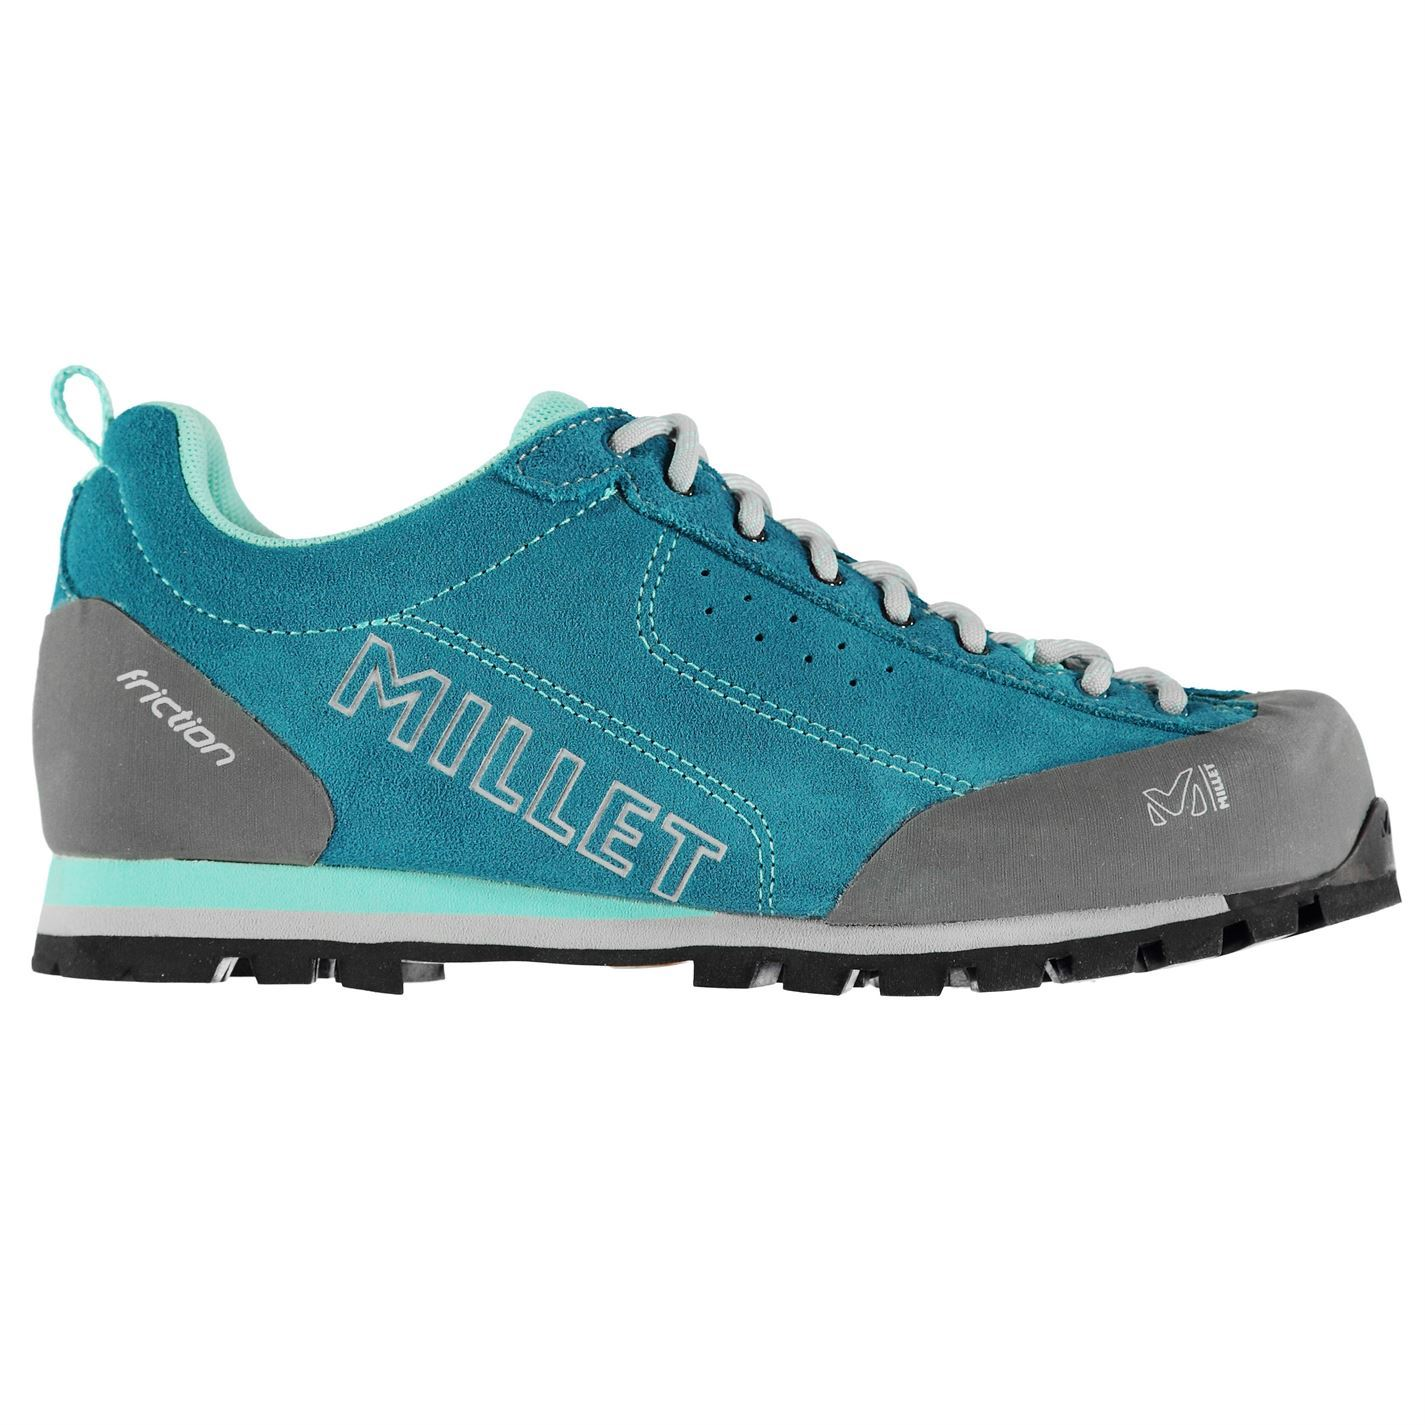 Millet Friction Low Walking Shoes